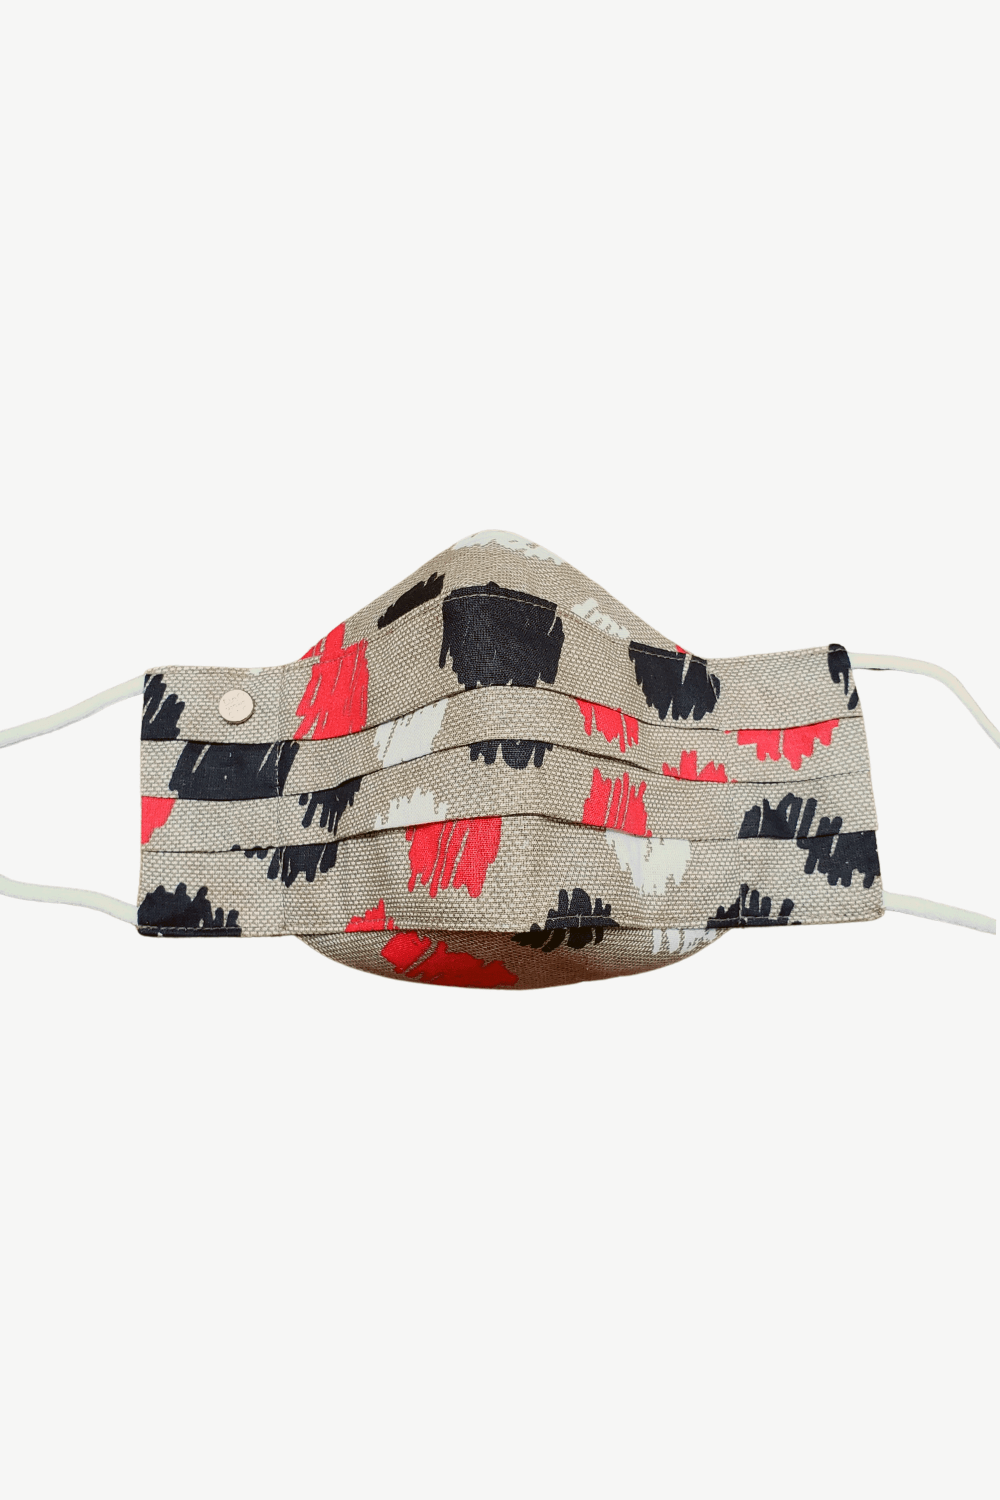 Safely Sip Face Mask Safely Sip Mask in Retro Red Polka Dot - Chloe Dao